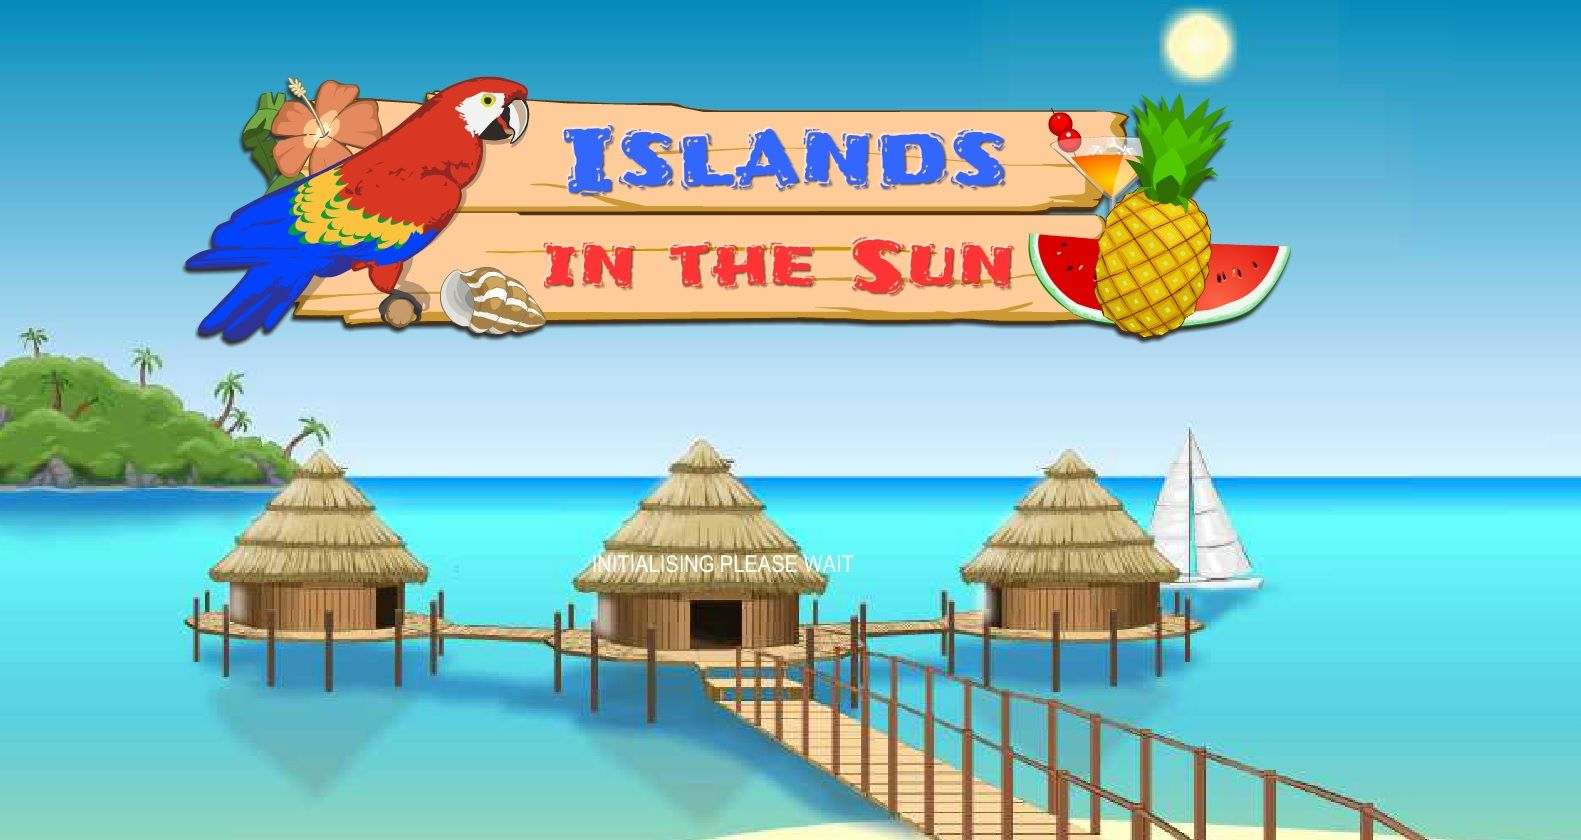 Islands in the Sun Slot - Play OpenBet Slots Online for Free